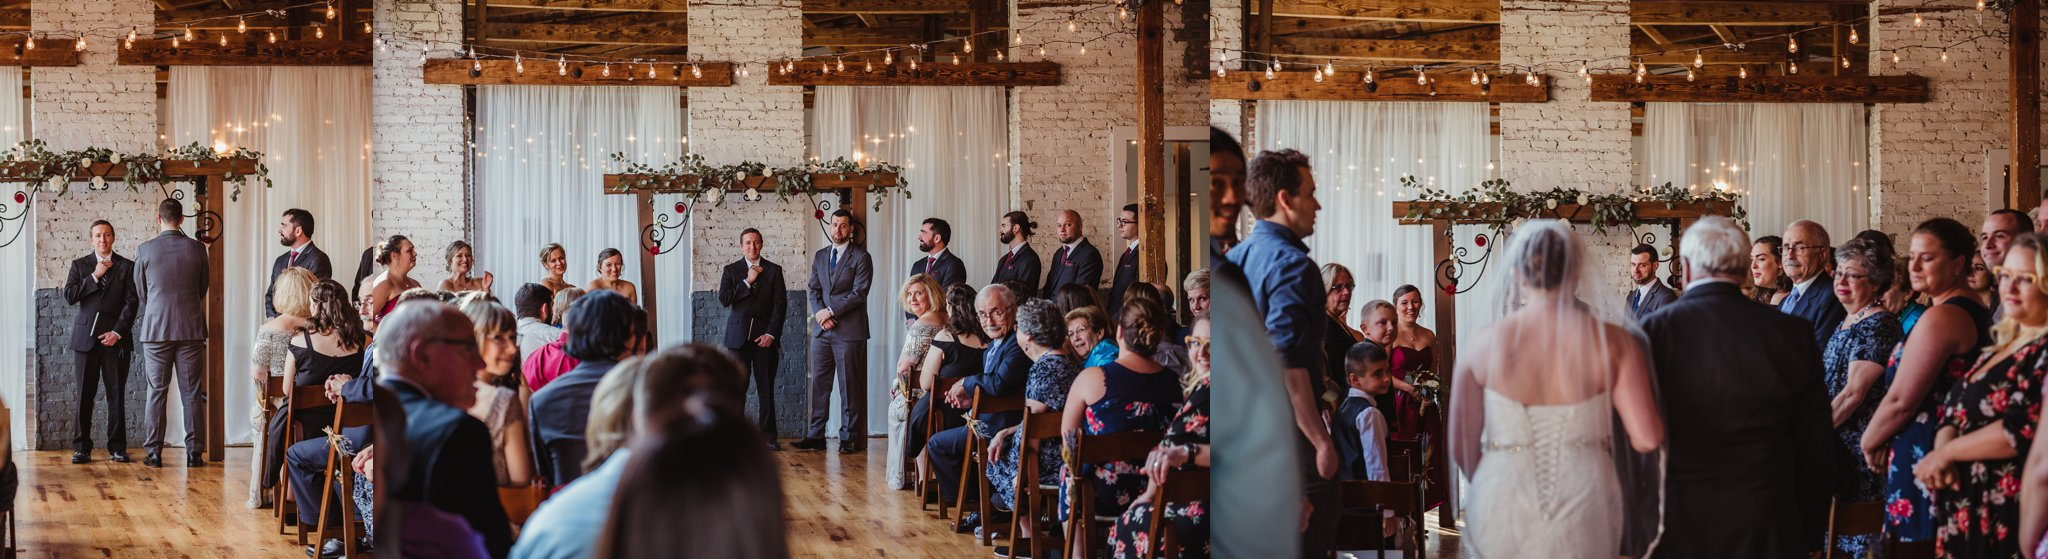 Pictures of the groom seeing his bride for the first time as she walks down the aisle at their wedding ceremony in Raleigh, North Carolina, pictures by Rose Trail Images.